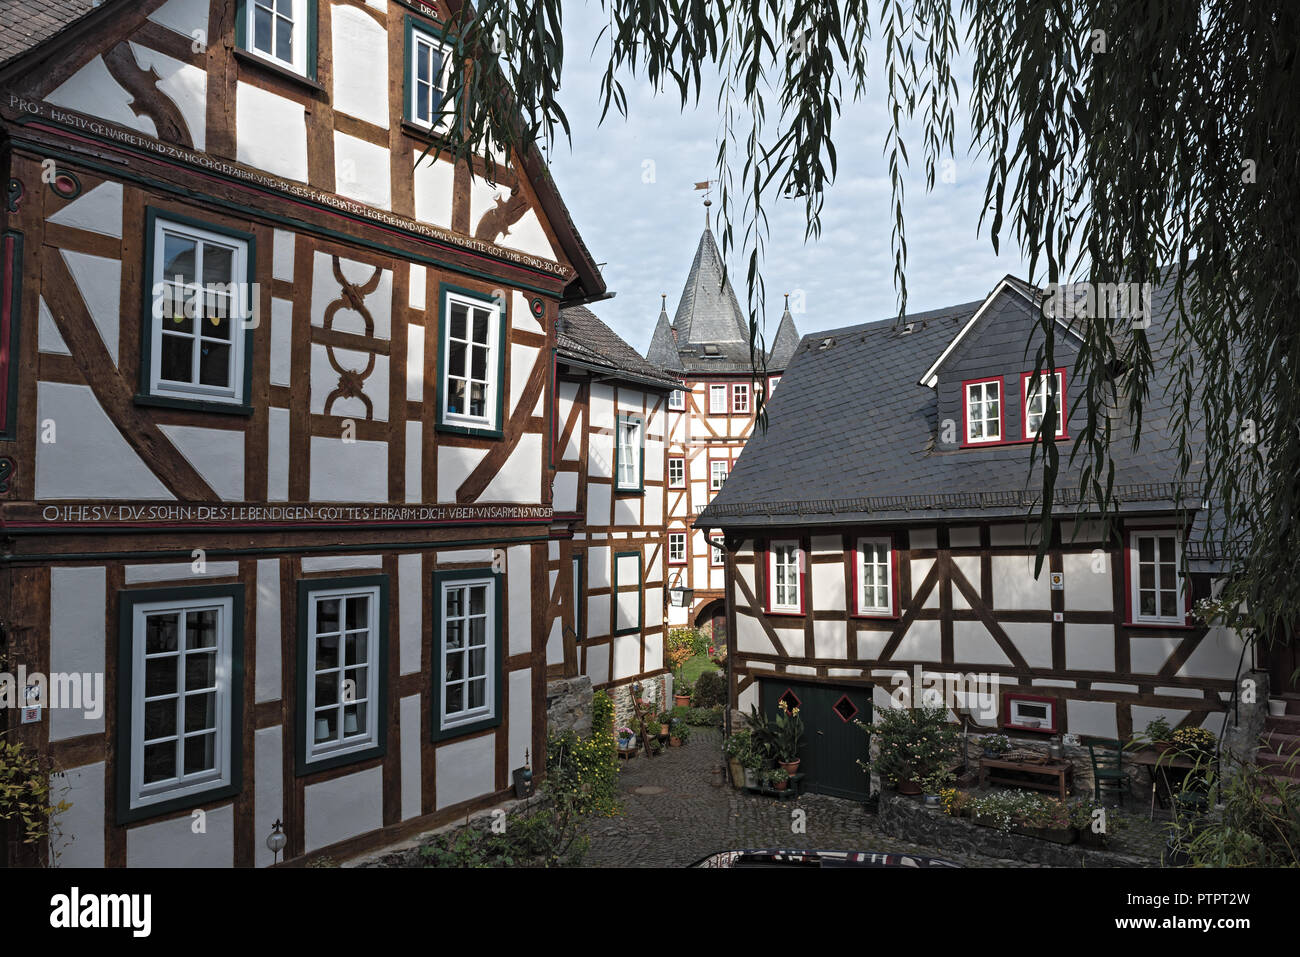 historic half-timbered houses in the old town of braunfels, hesse, germany. - Stock Image